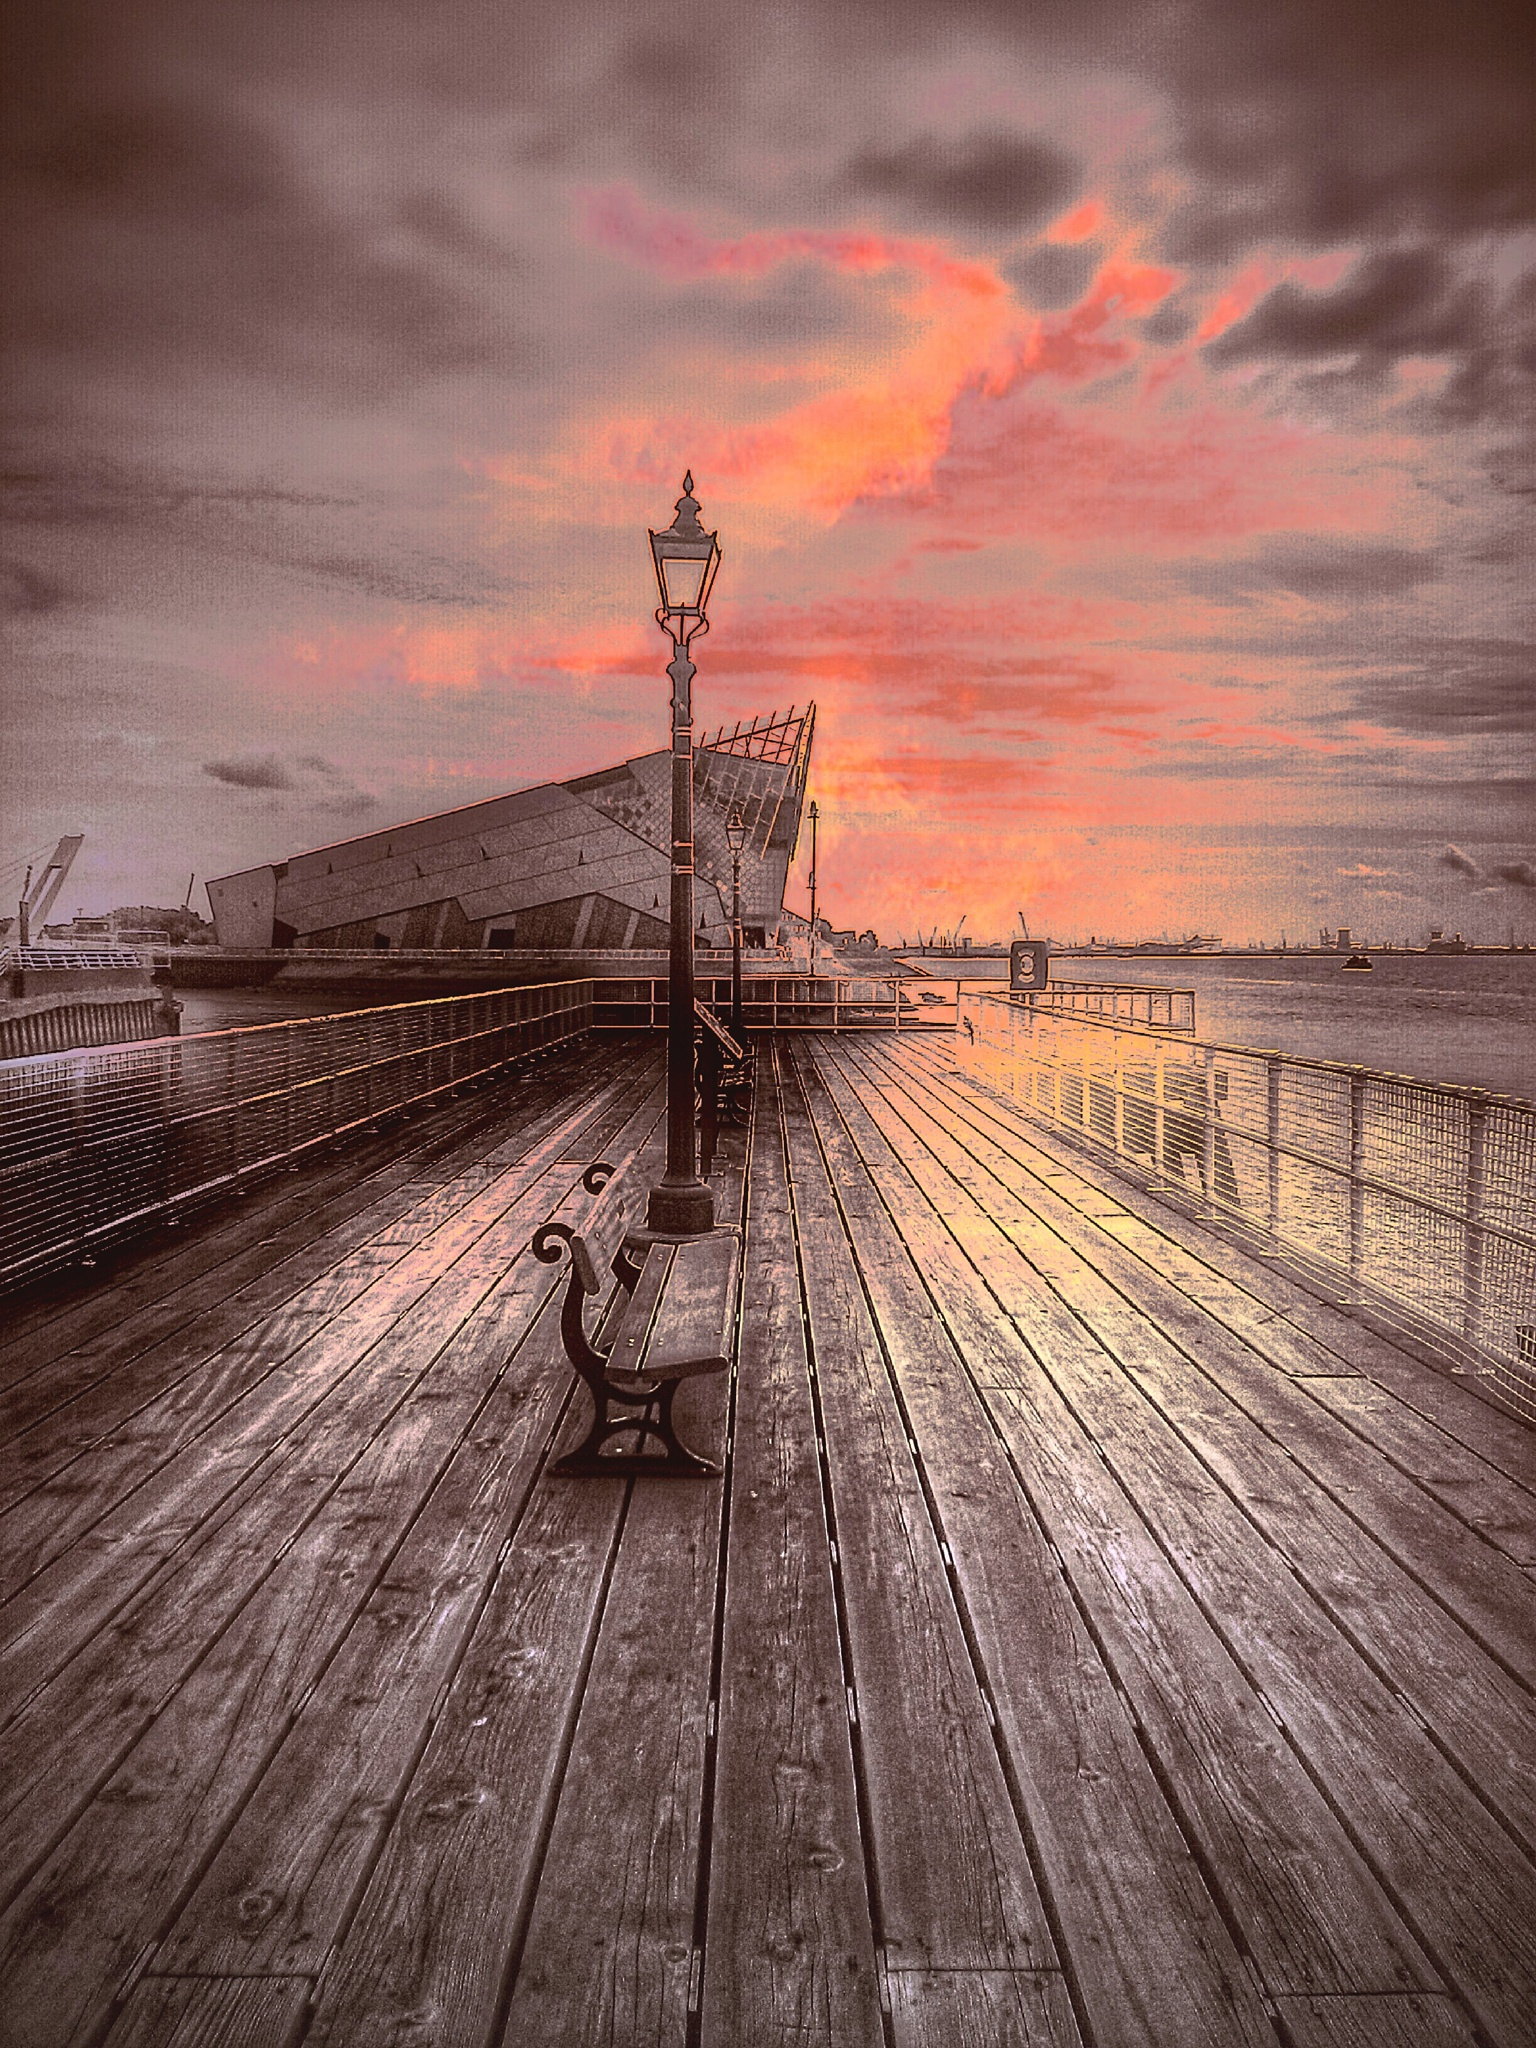 Untitled by uniqueimagesofhull